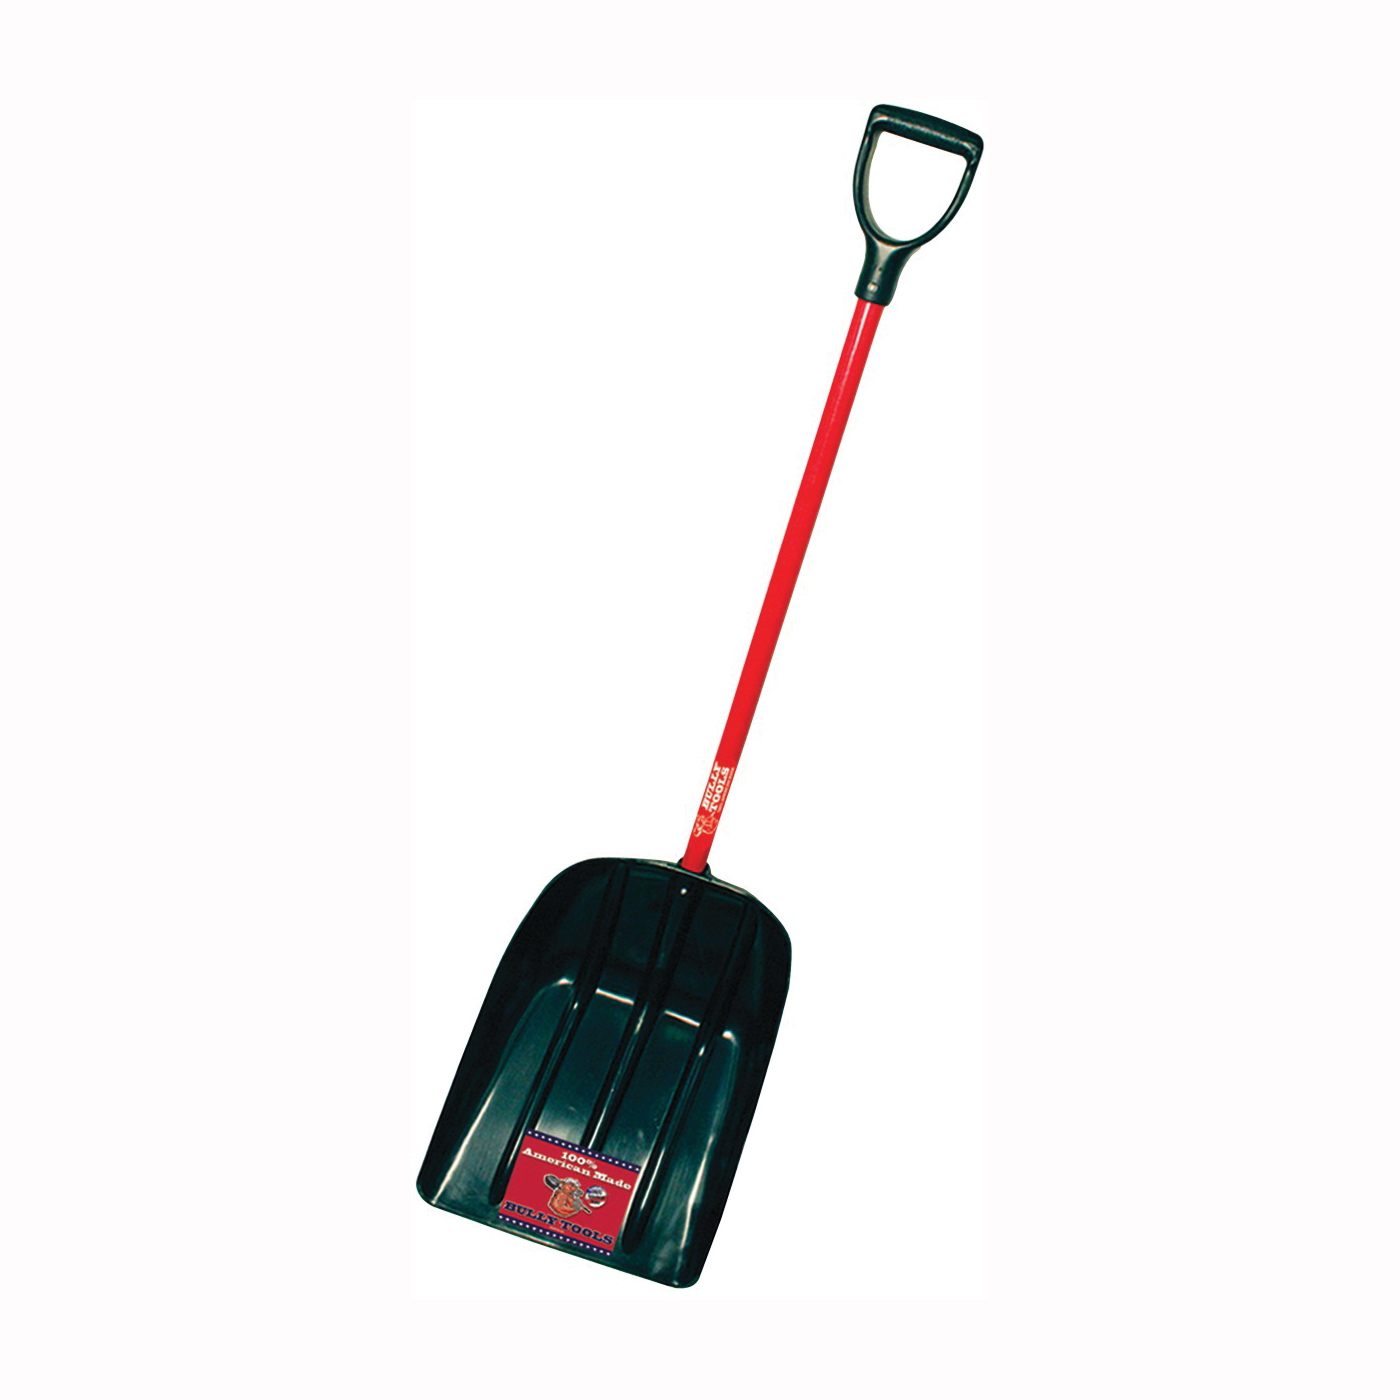 Picture of BULLY Tools 92400 Grain and Snow Shovel, 15 in W Blade, 19-3/4 in L Blade, Poly Blade, Fiberglass Handle